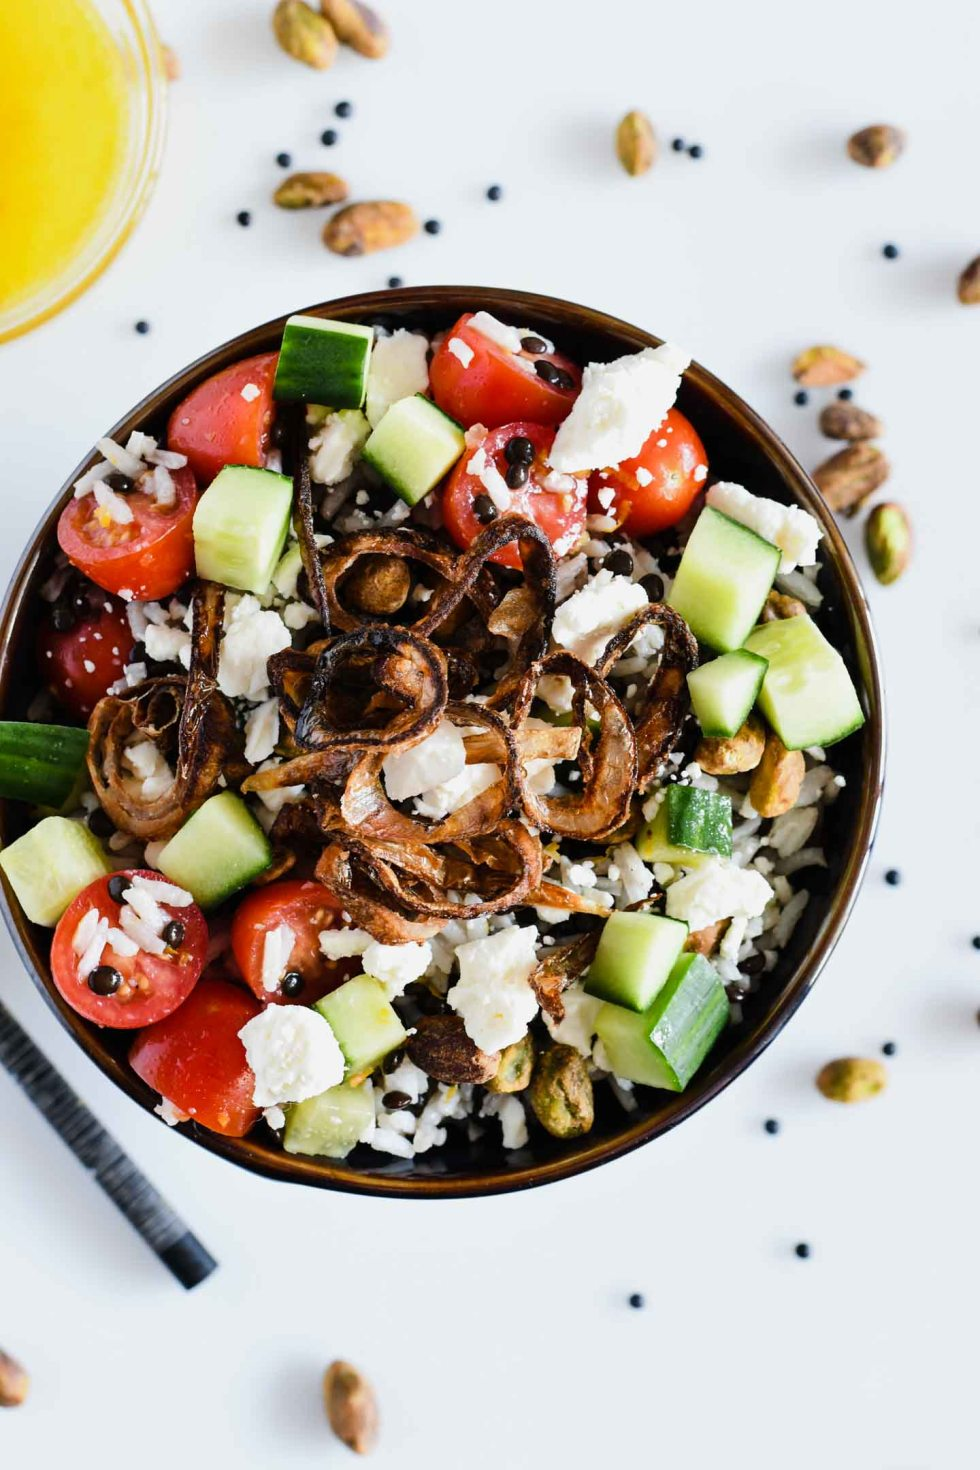 Beluga lentils offer an great source of protein in this flavorful salad. Adding some beluga lentil recipes to your weekly meal rotation will give you tasty options for meatless Monday!